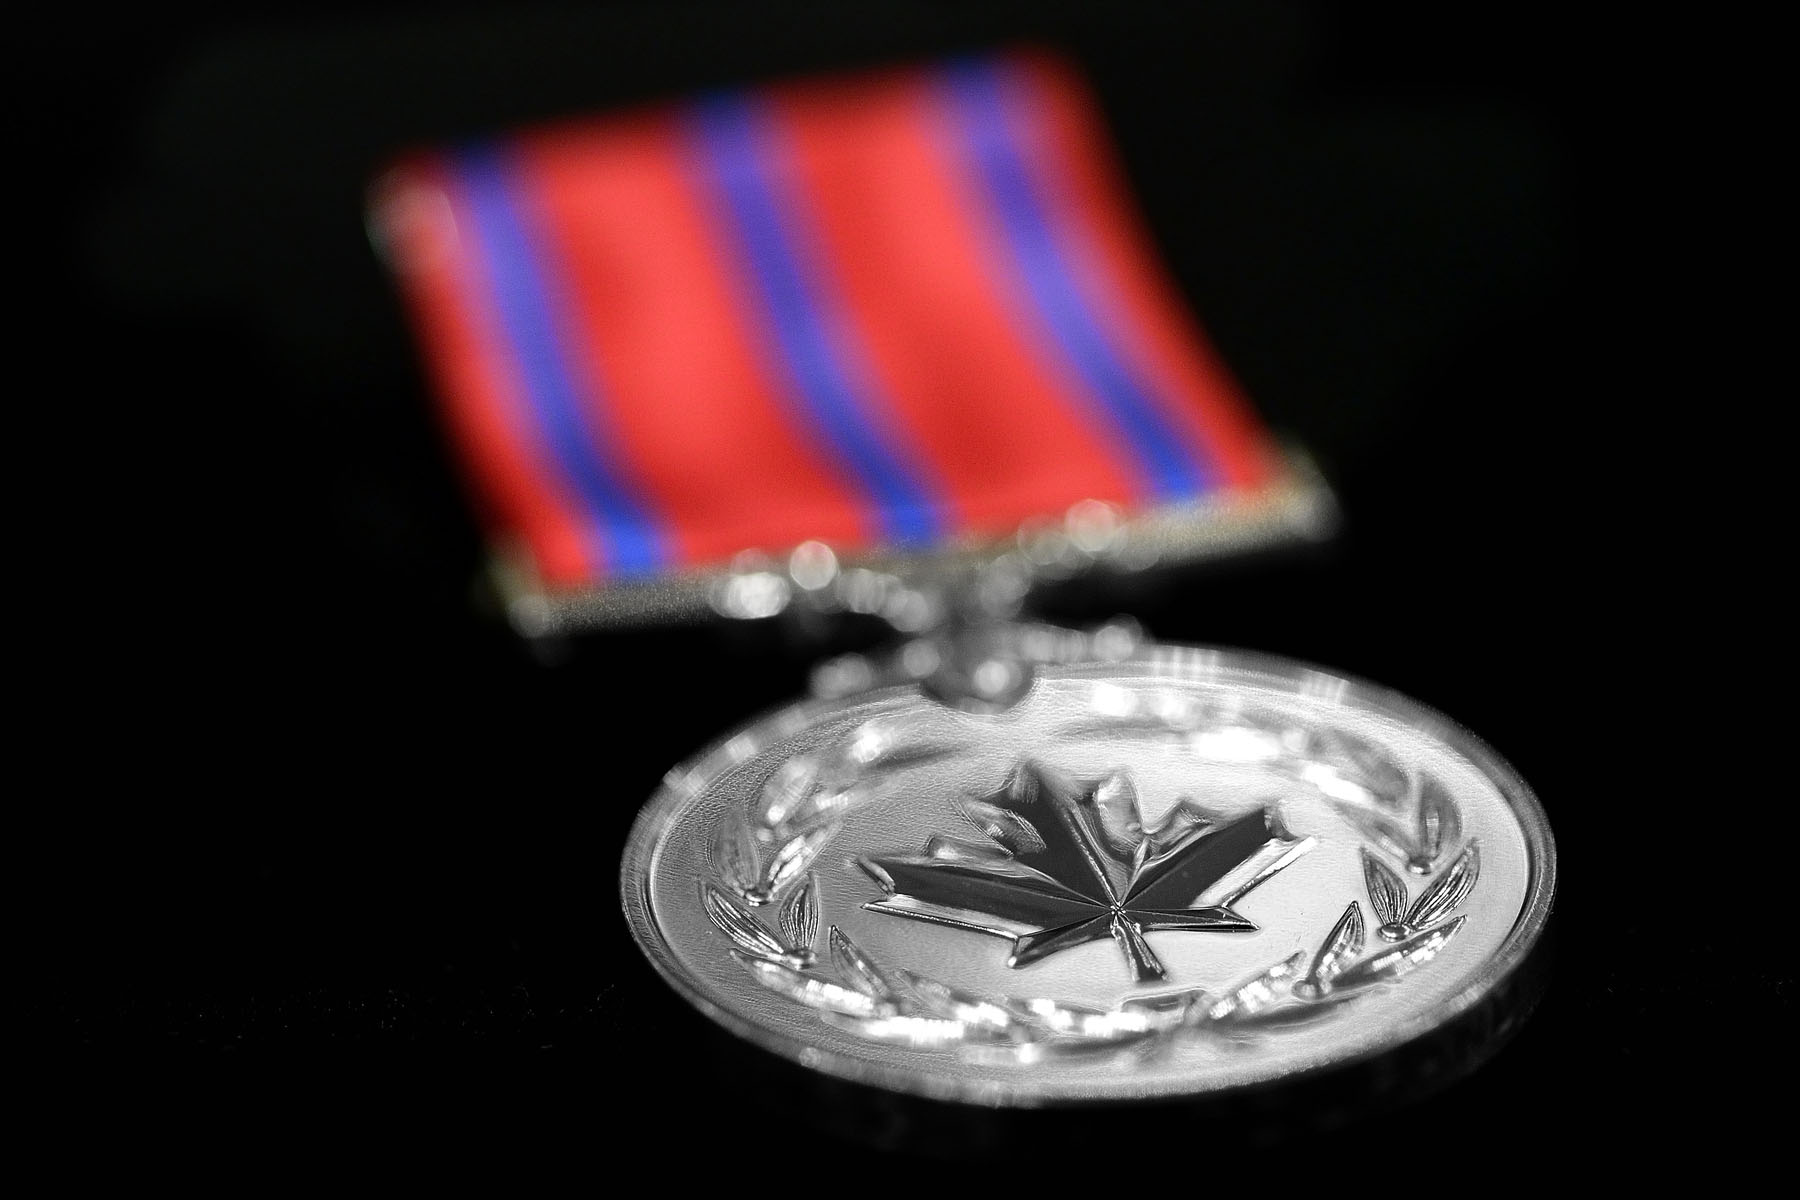 The Medal of Bravery (M.B.) recognizes acts of bravery in hazardous circumstances.